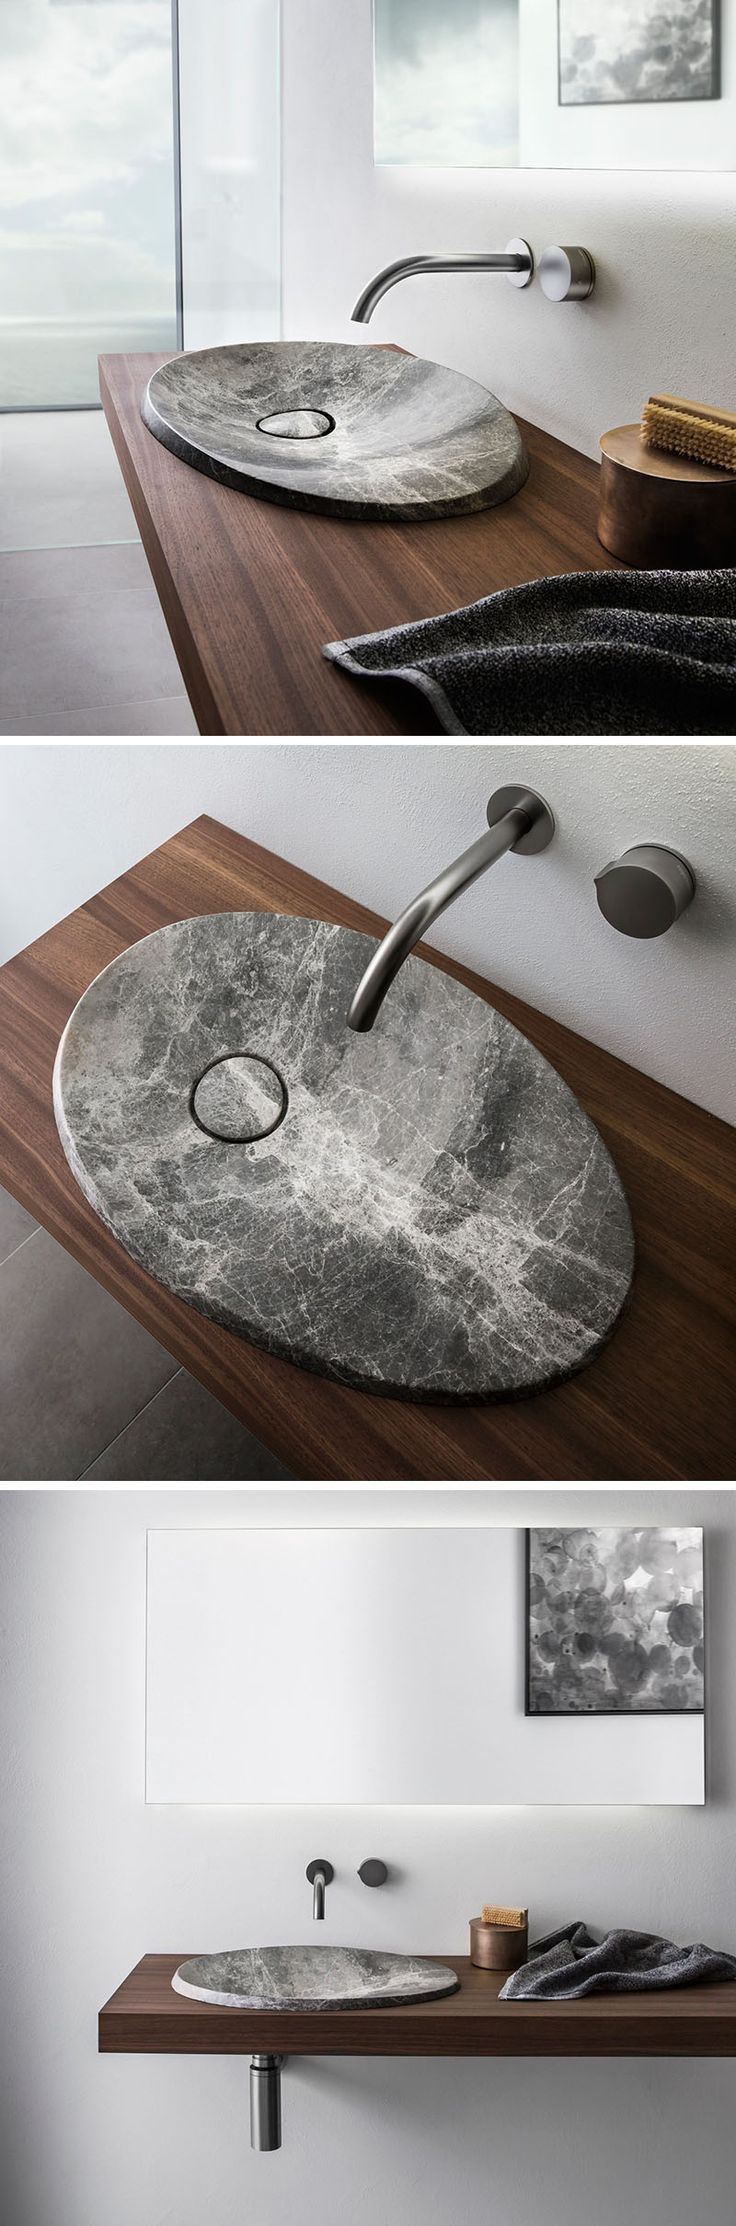 25+ best ideas about Stone sink on Pinterest